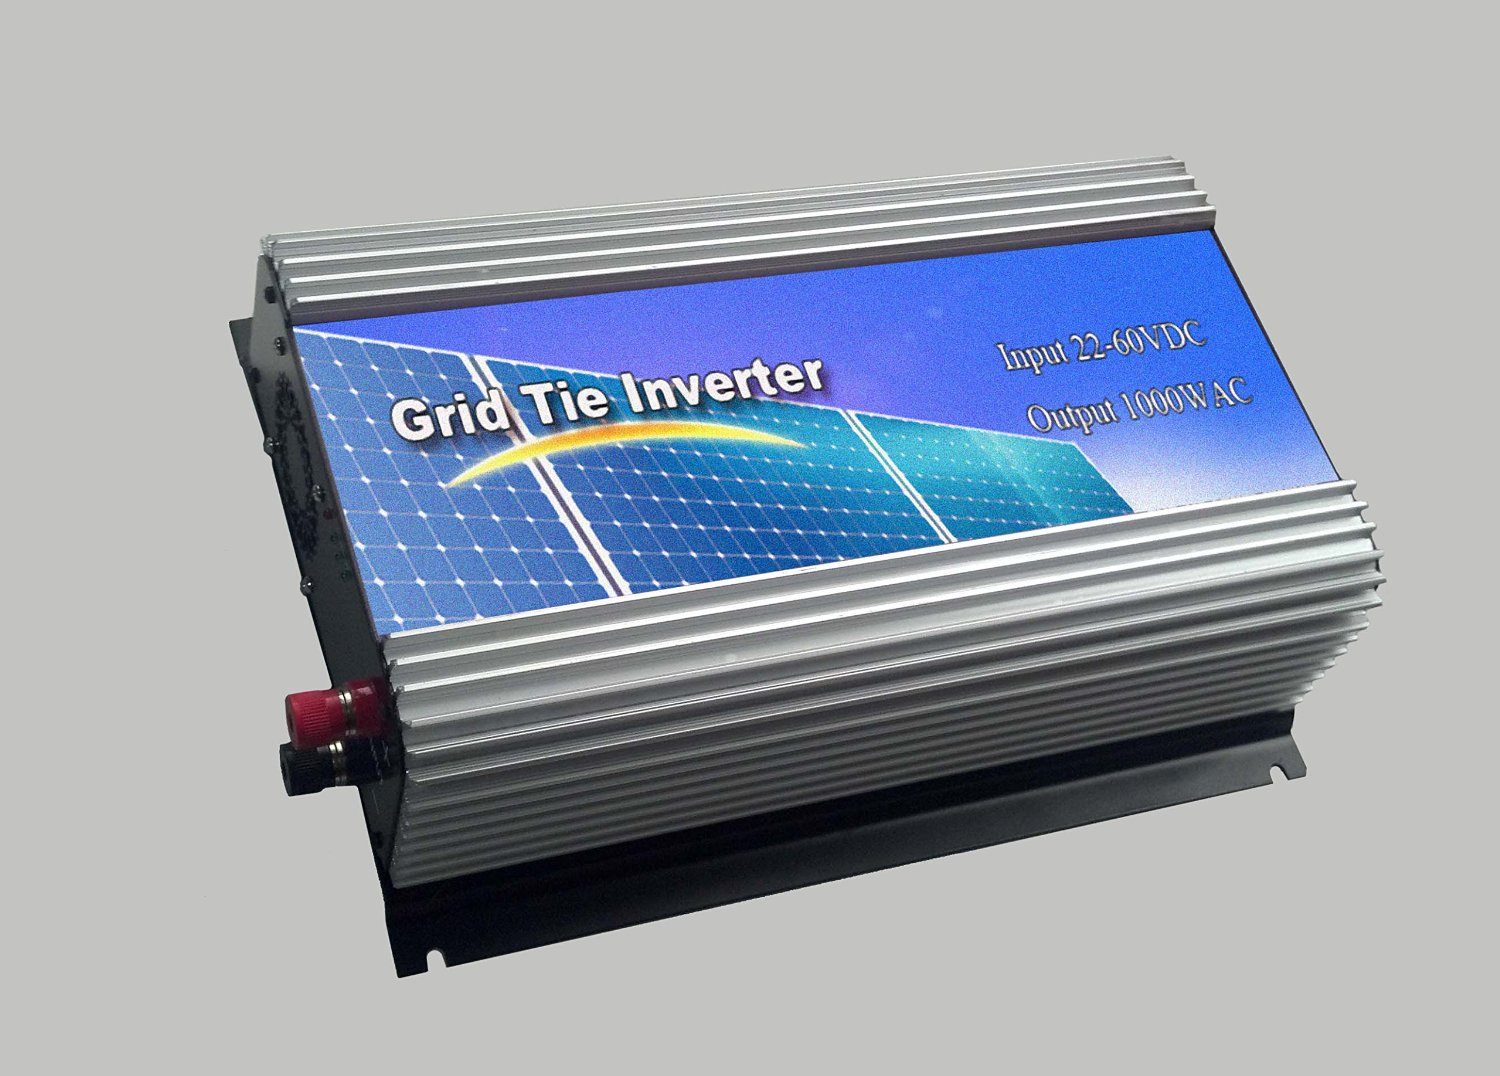 DECEN 1000w High Efficiency On Grid Tie Inverter Output Pure Sine Wave, 45-90vdc,110vac,60hz for Home Solar System